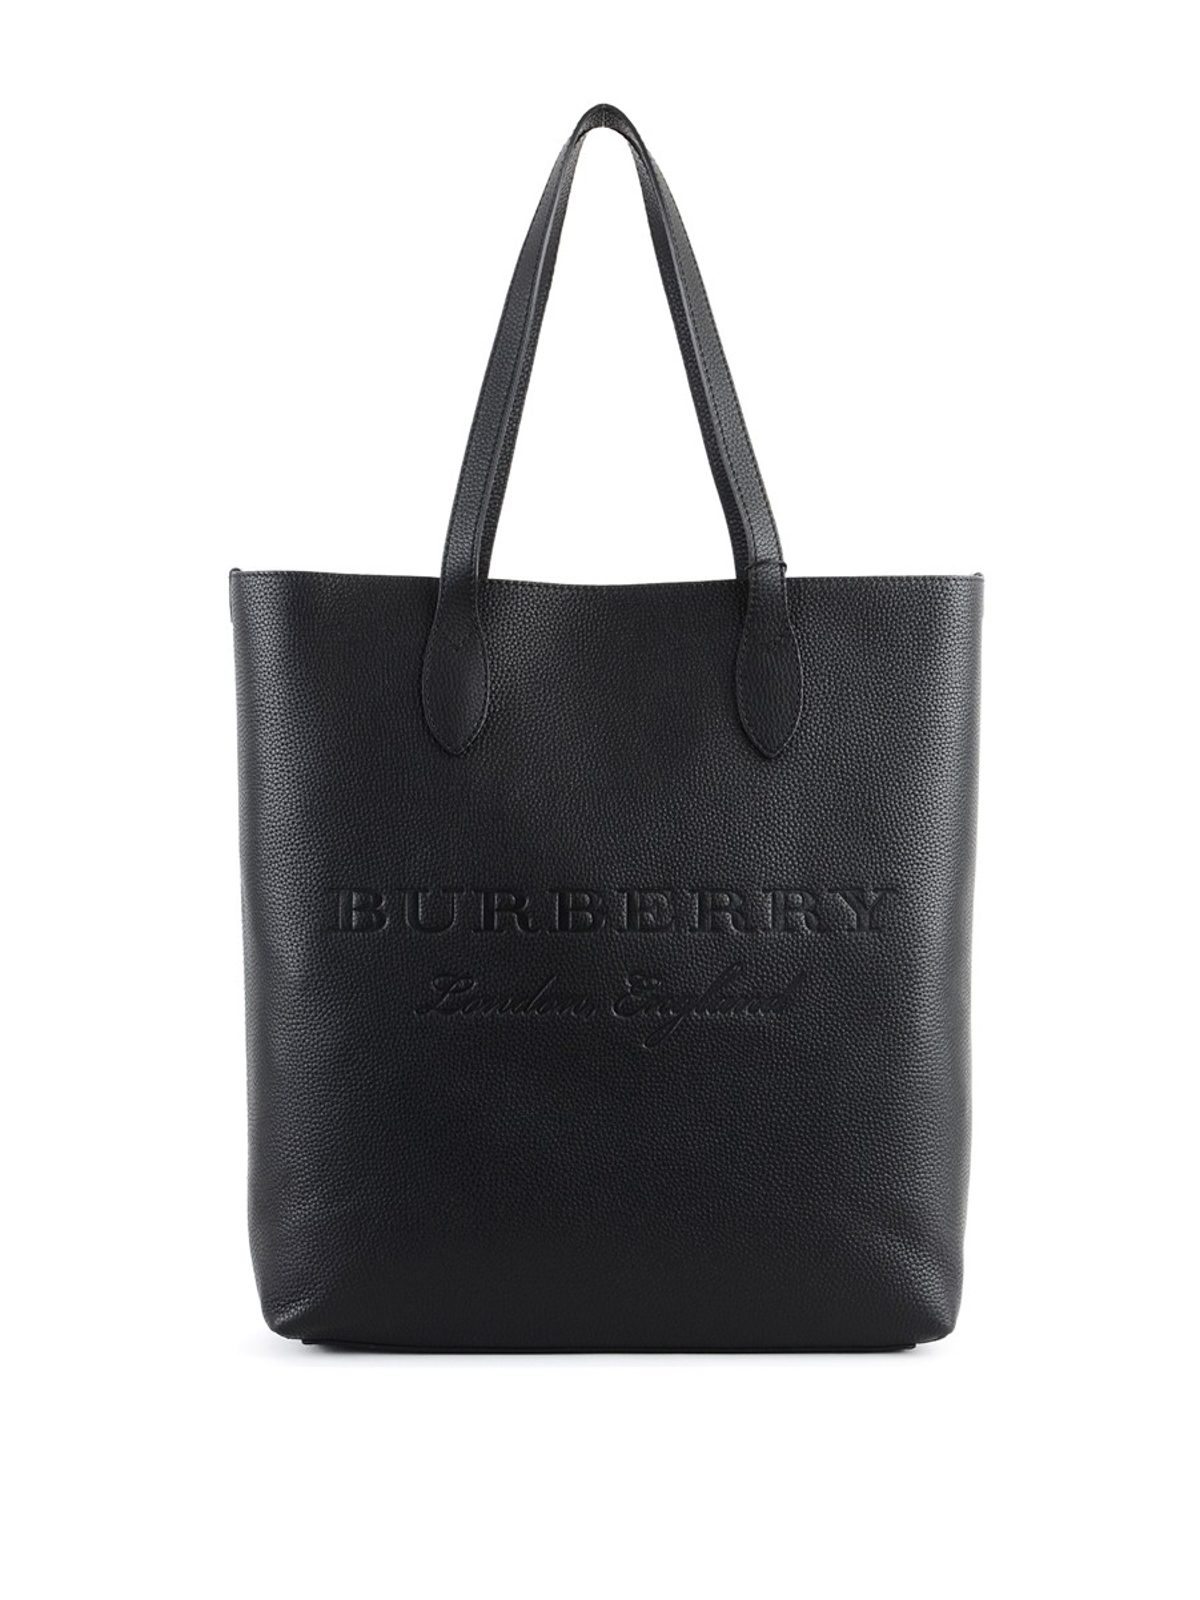 28c6d617c143 Burberry - Remington N S embossed leather tote - totes bags - 40578781